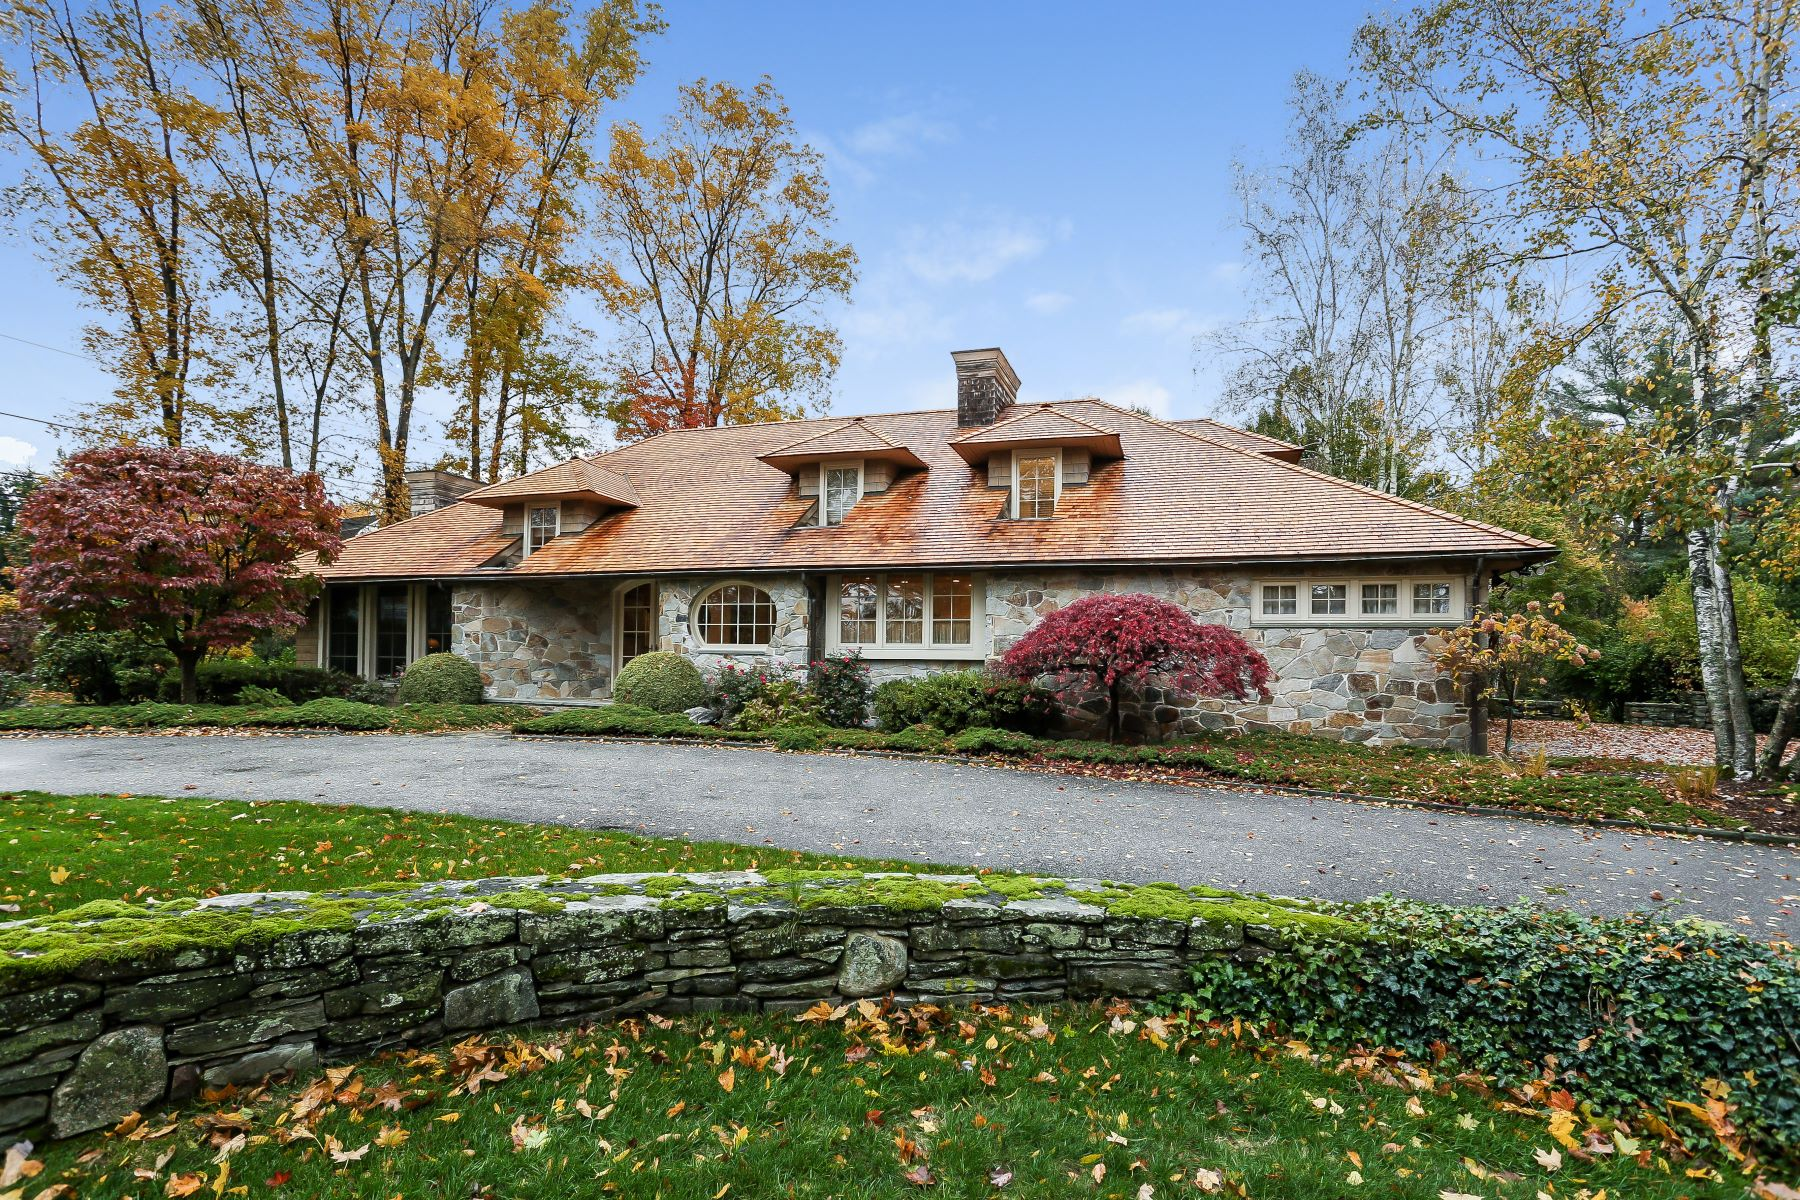 Single Family Homes for Active at Fabulous English Country Home 991 Pequot Avenue Fairfield, Connecticut 06890 United States